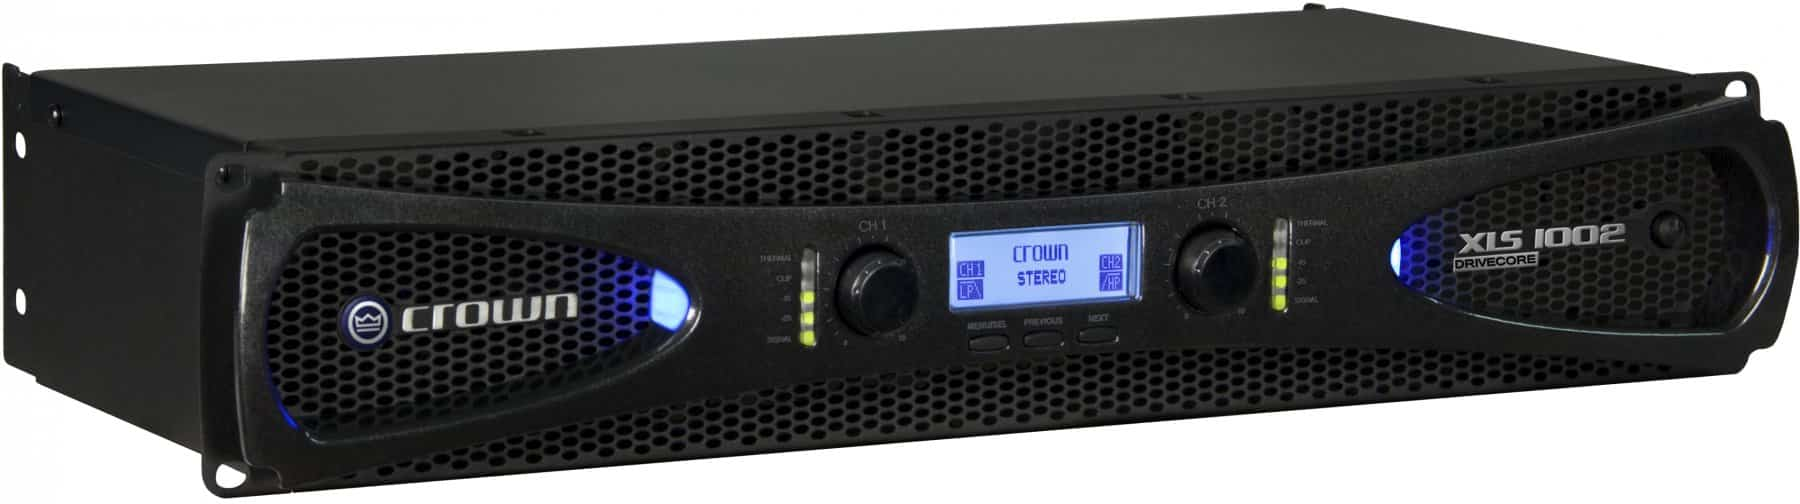 Crown XLS1002 Endstufe Stereo